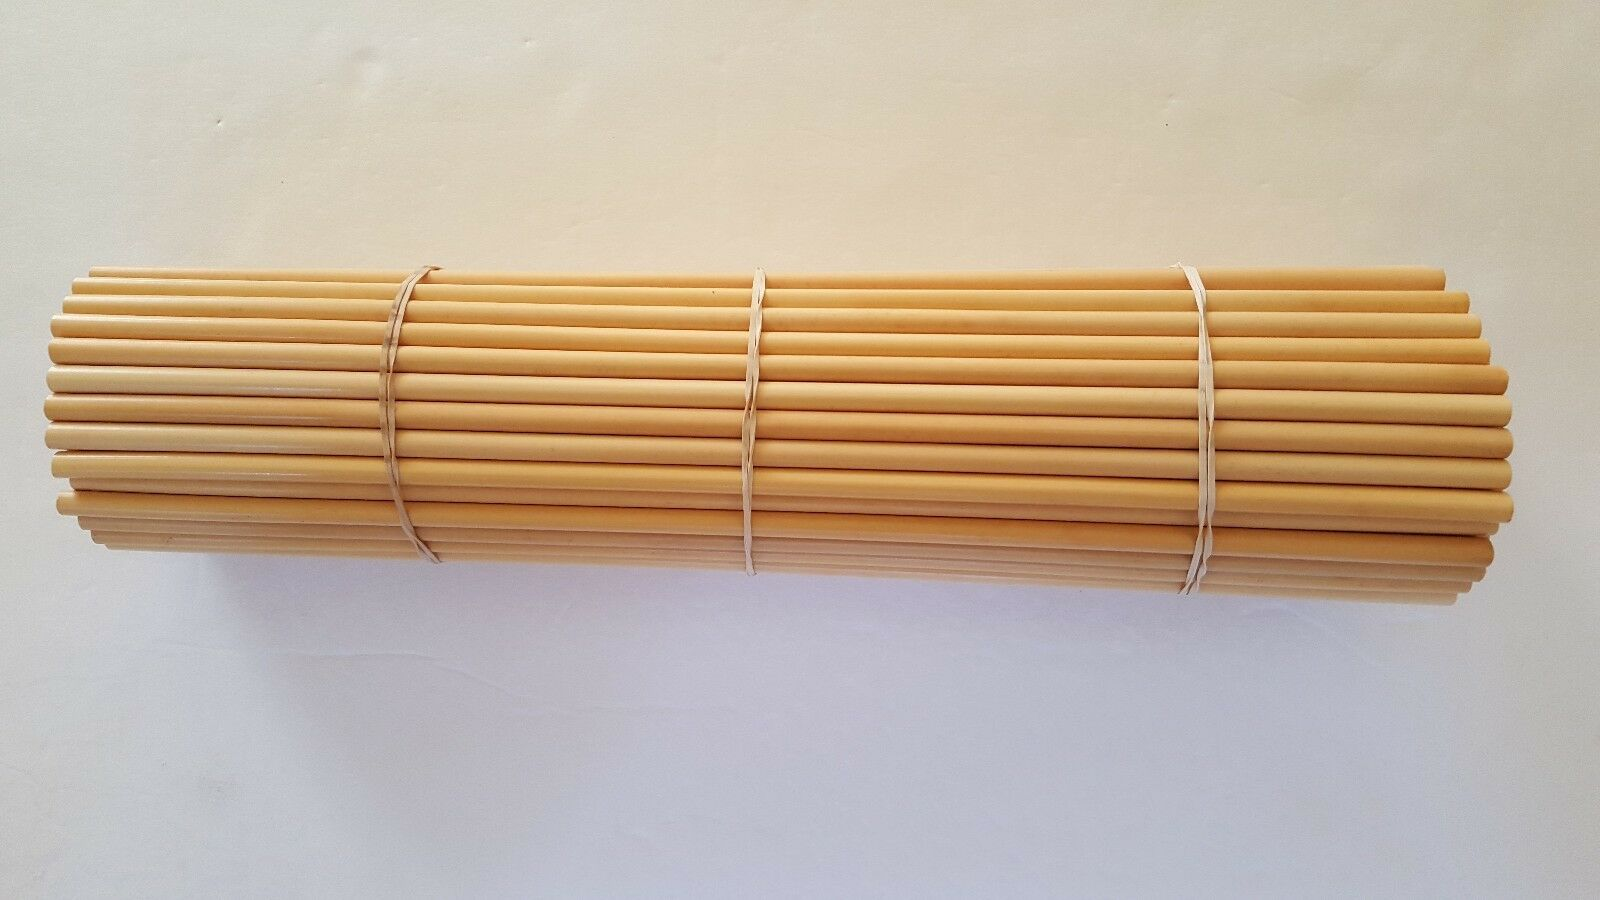 Rattan cane for percussion mallets